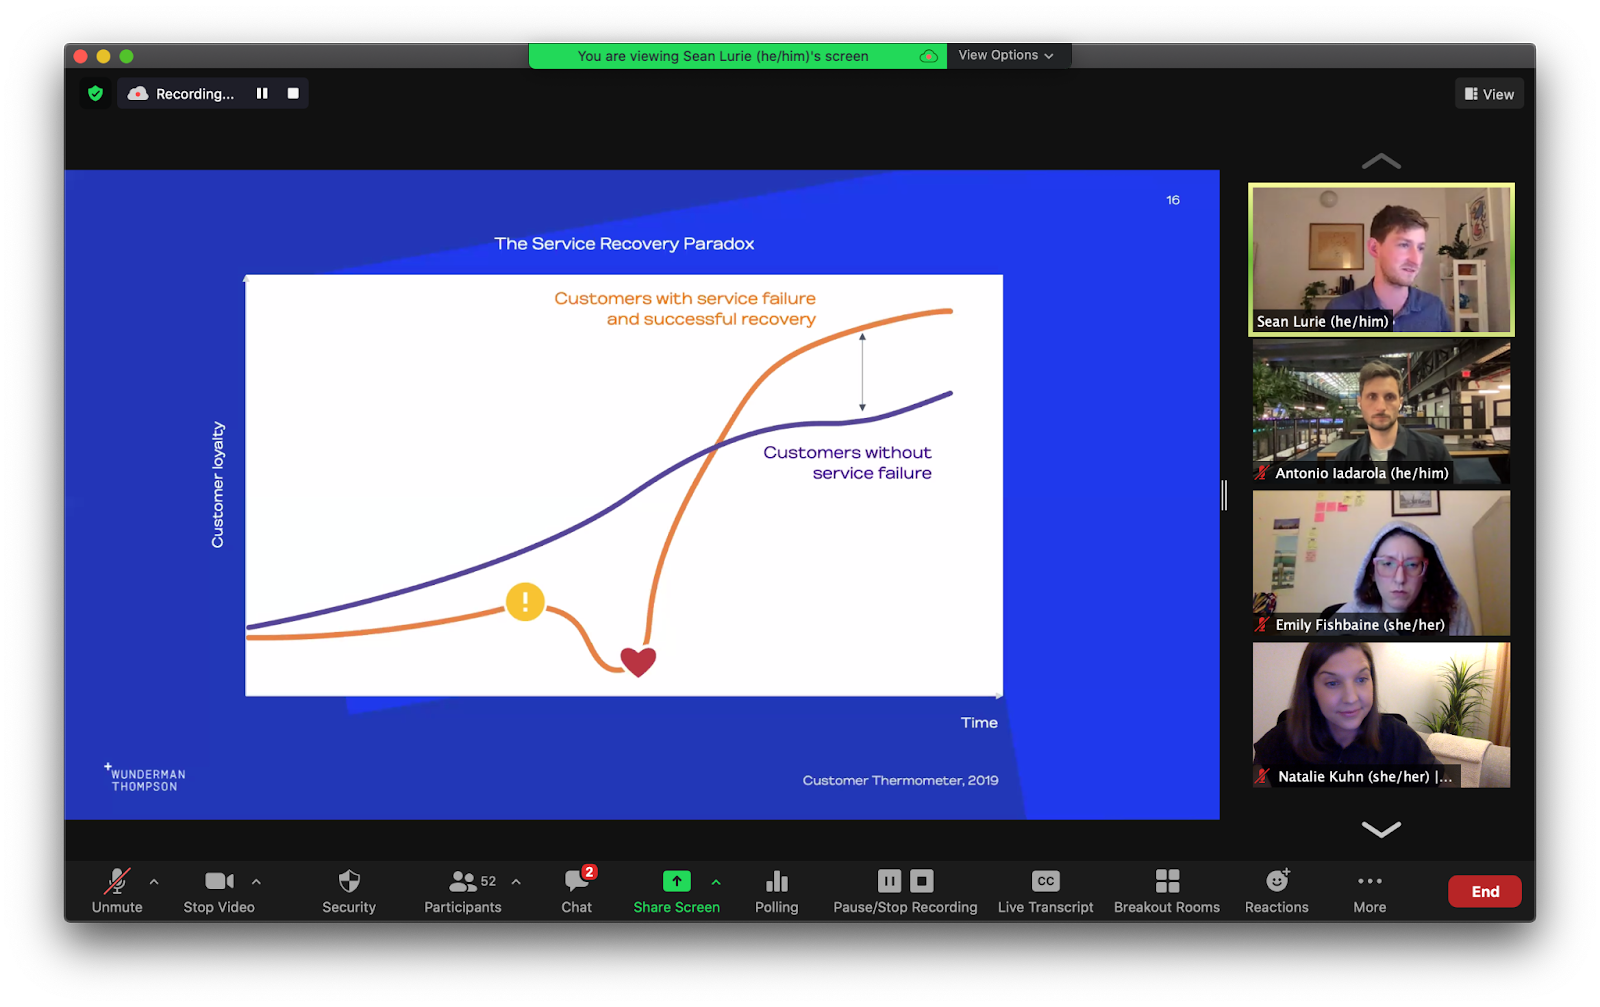 Zoom screenshot of chart depicting the service recovery paradox with four participants visible